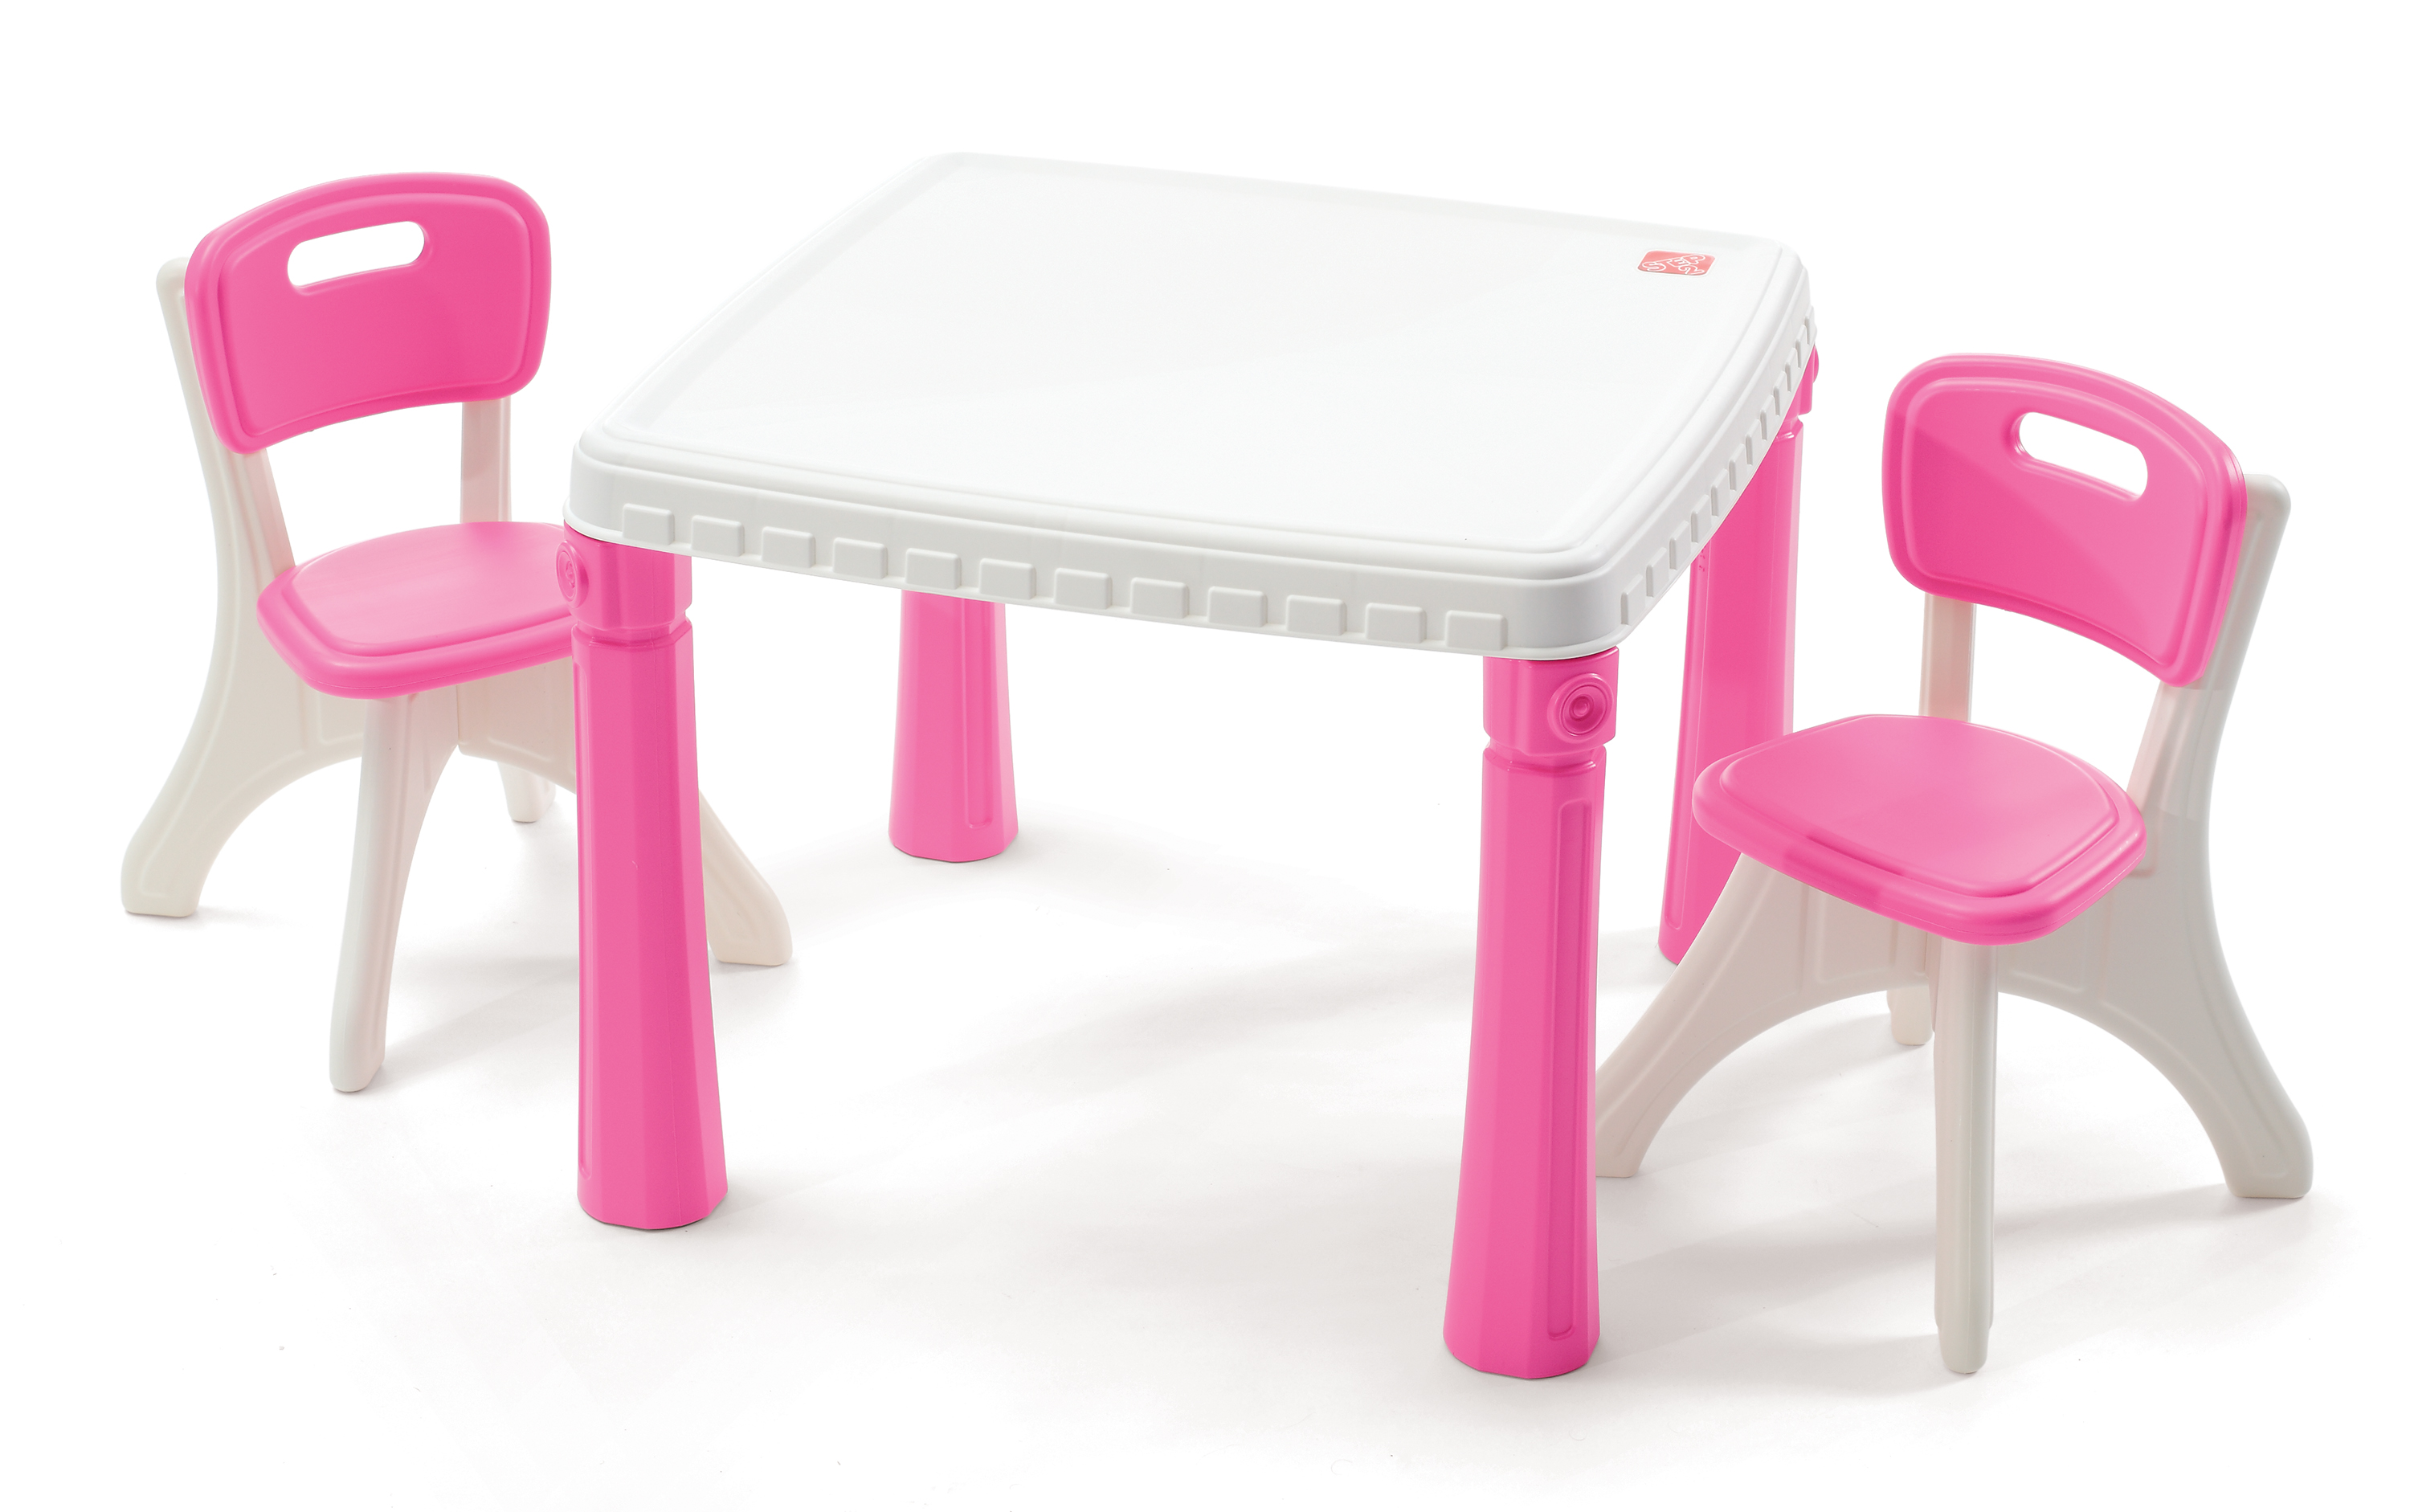 lifestyle kitchen table chairs set kitchen table chairs Step2 LifeStyle Kitchen Table Chairs Set Pink